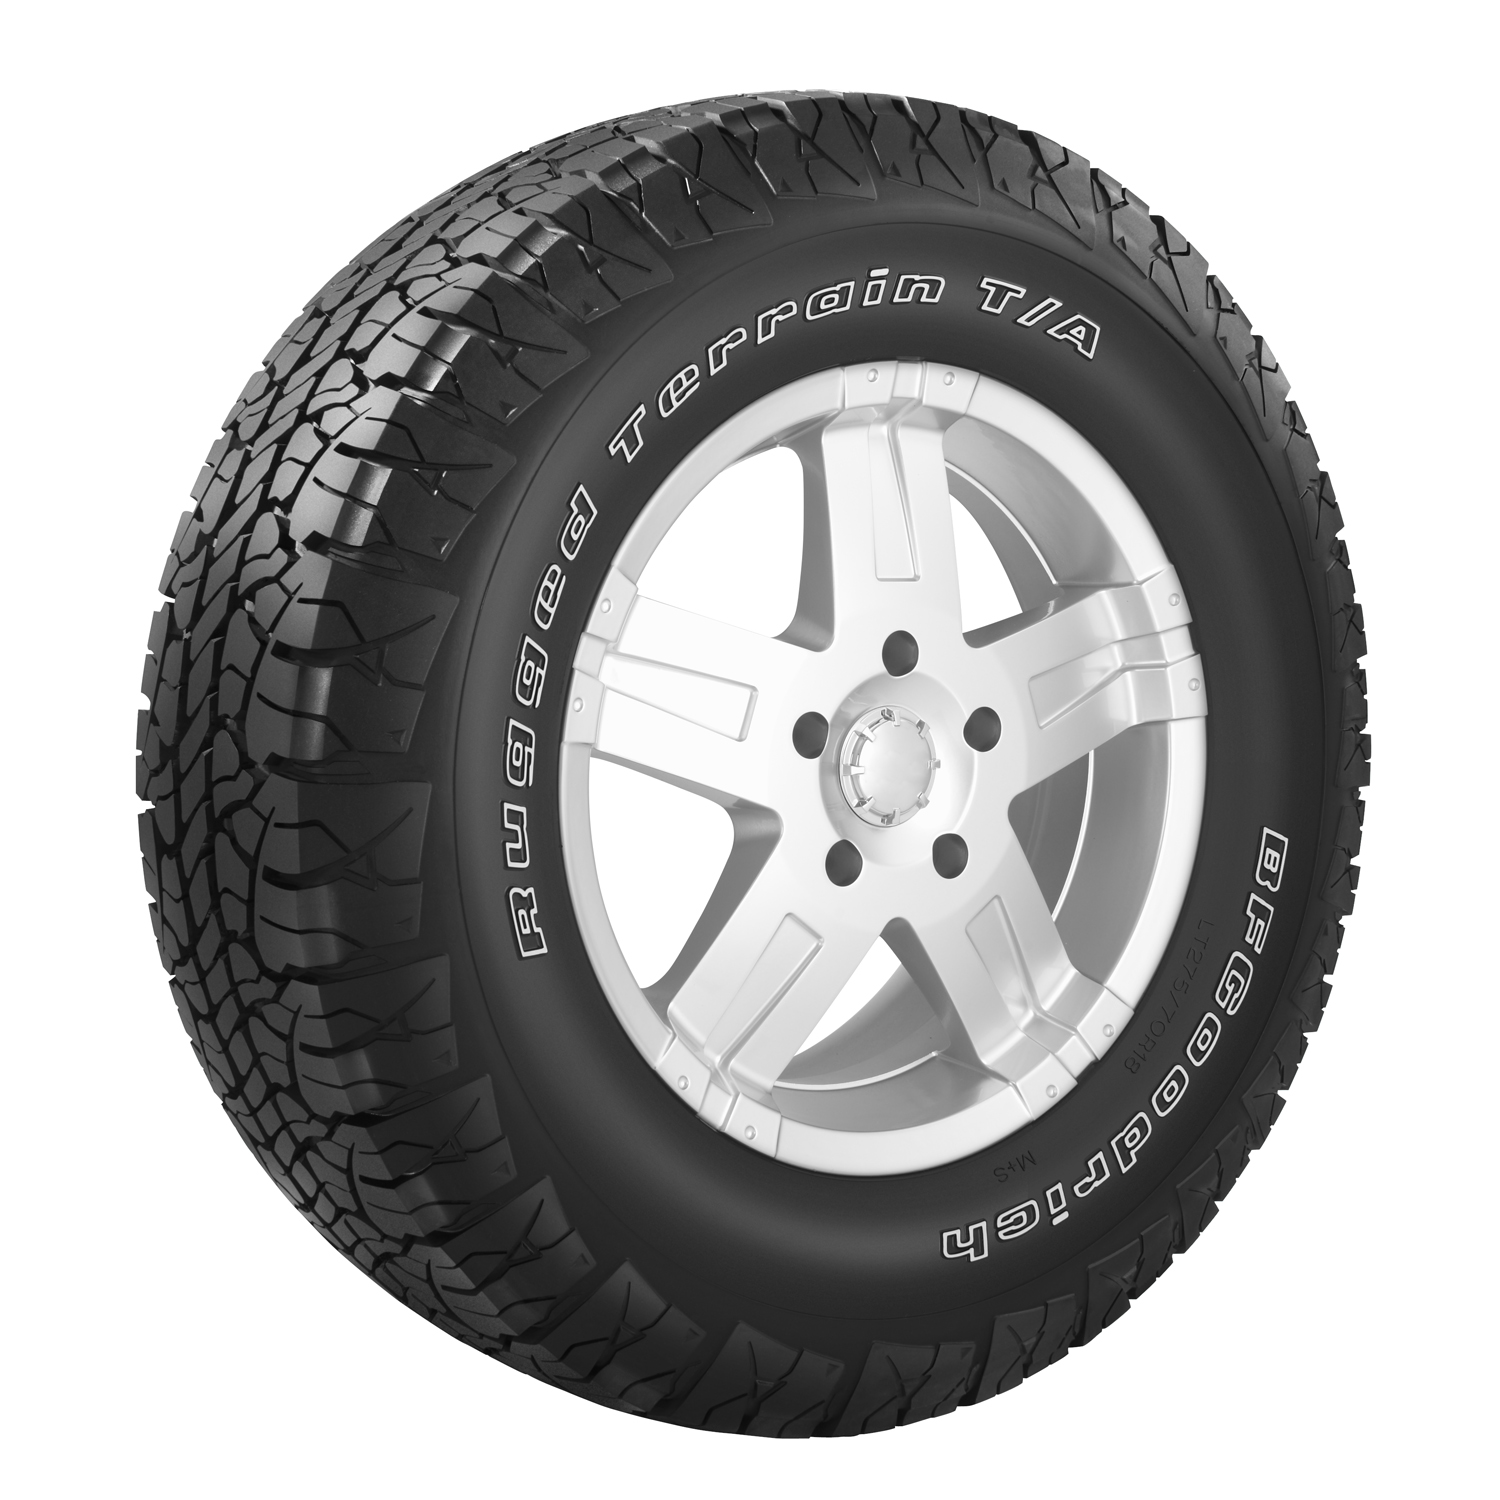 BFGoodrich Rugged Terrain T/A - P265/70R17 113T OWL - All Season Tire 265-70-17